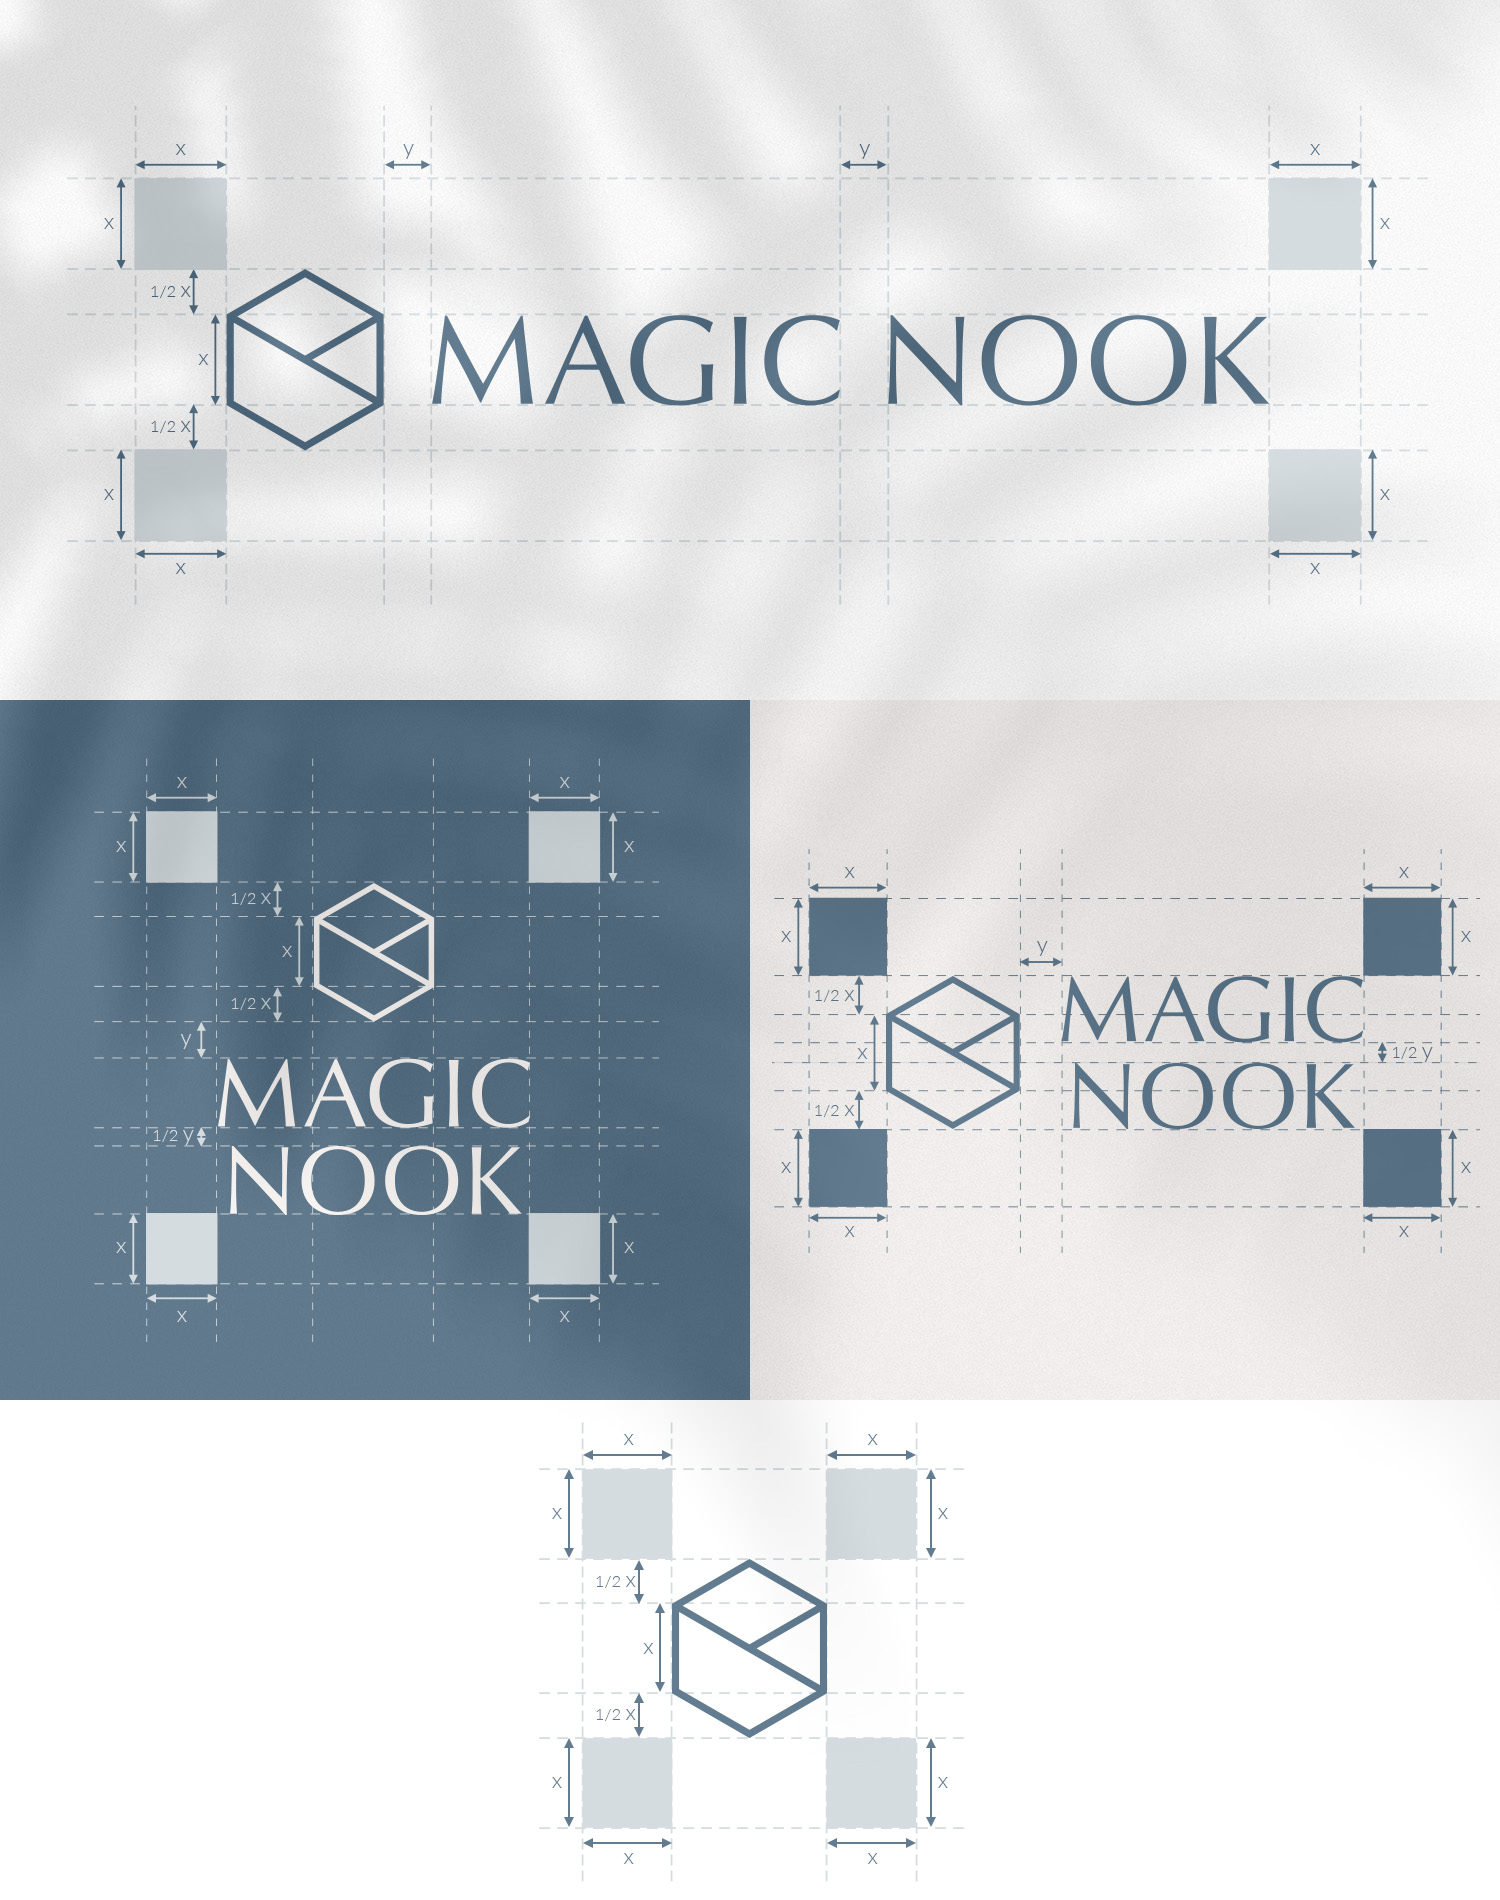 MAGIC NOOK Visual Identity 03 - Logo construction and clear space